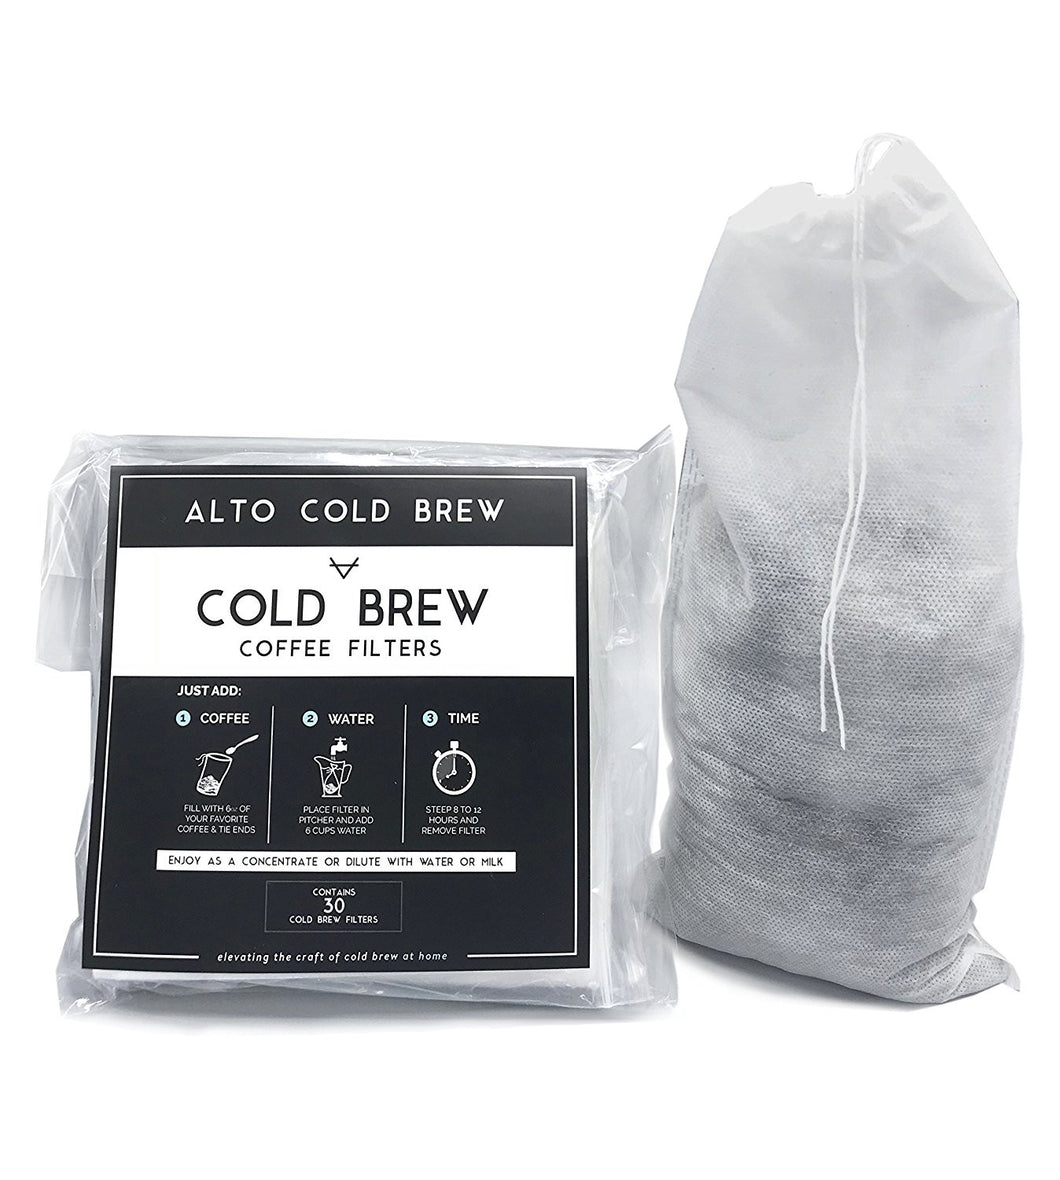 Filters for Cold Brew (Alto)